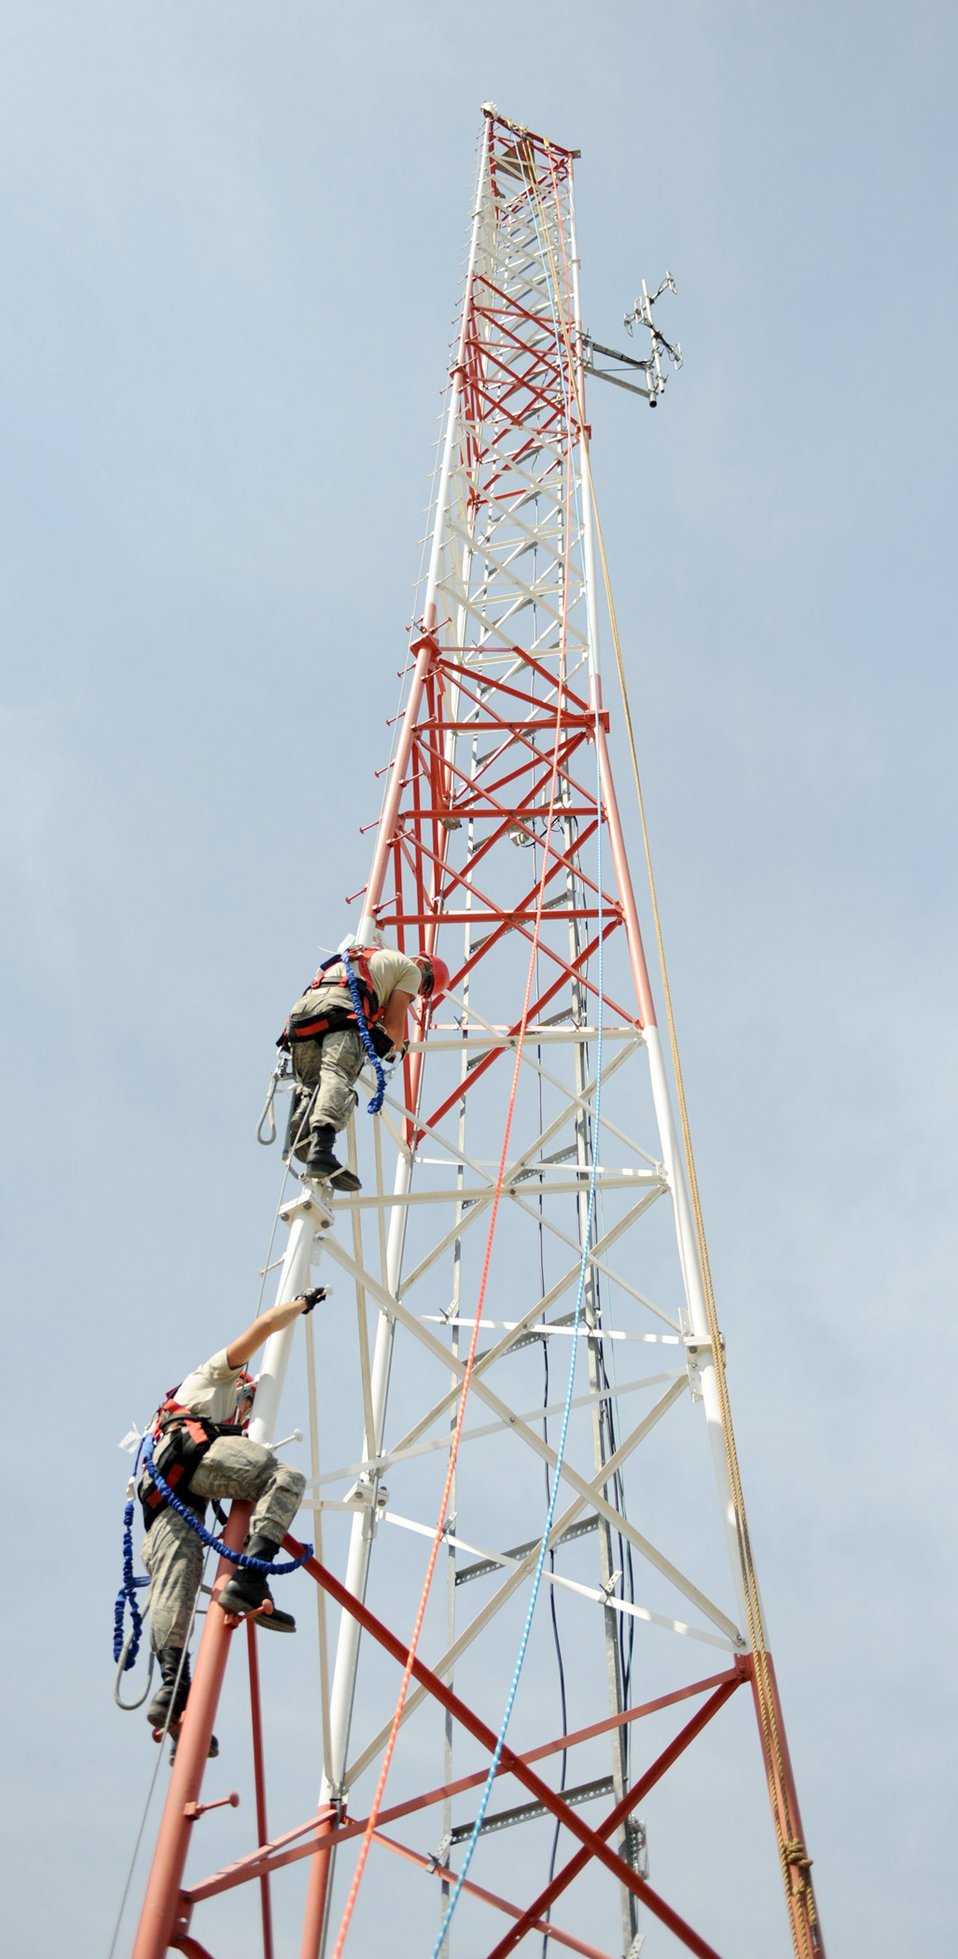 Upgrading communications tower